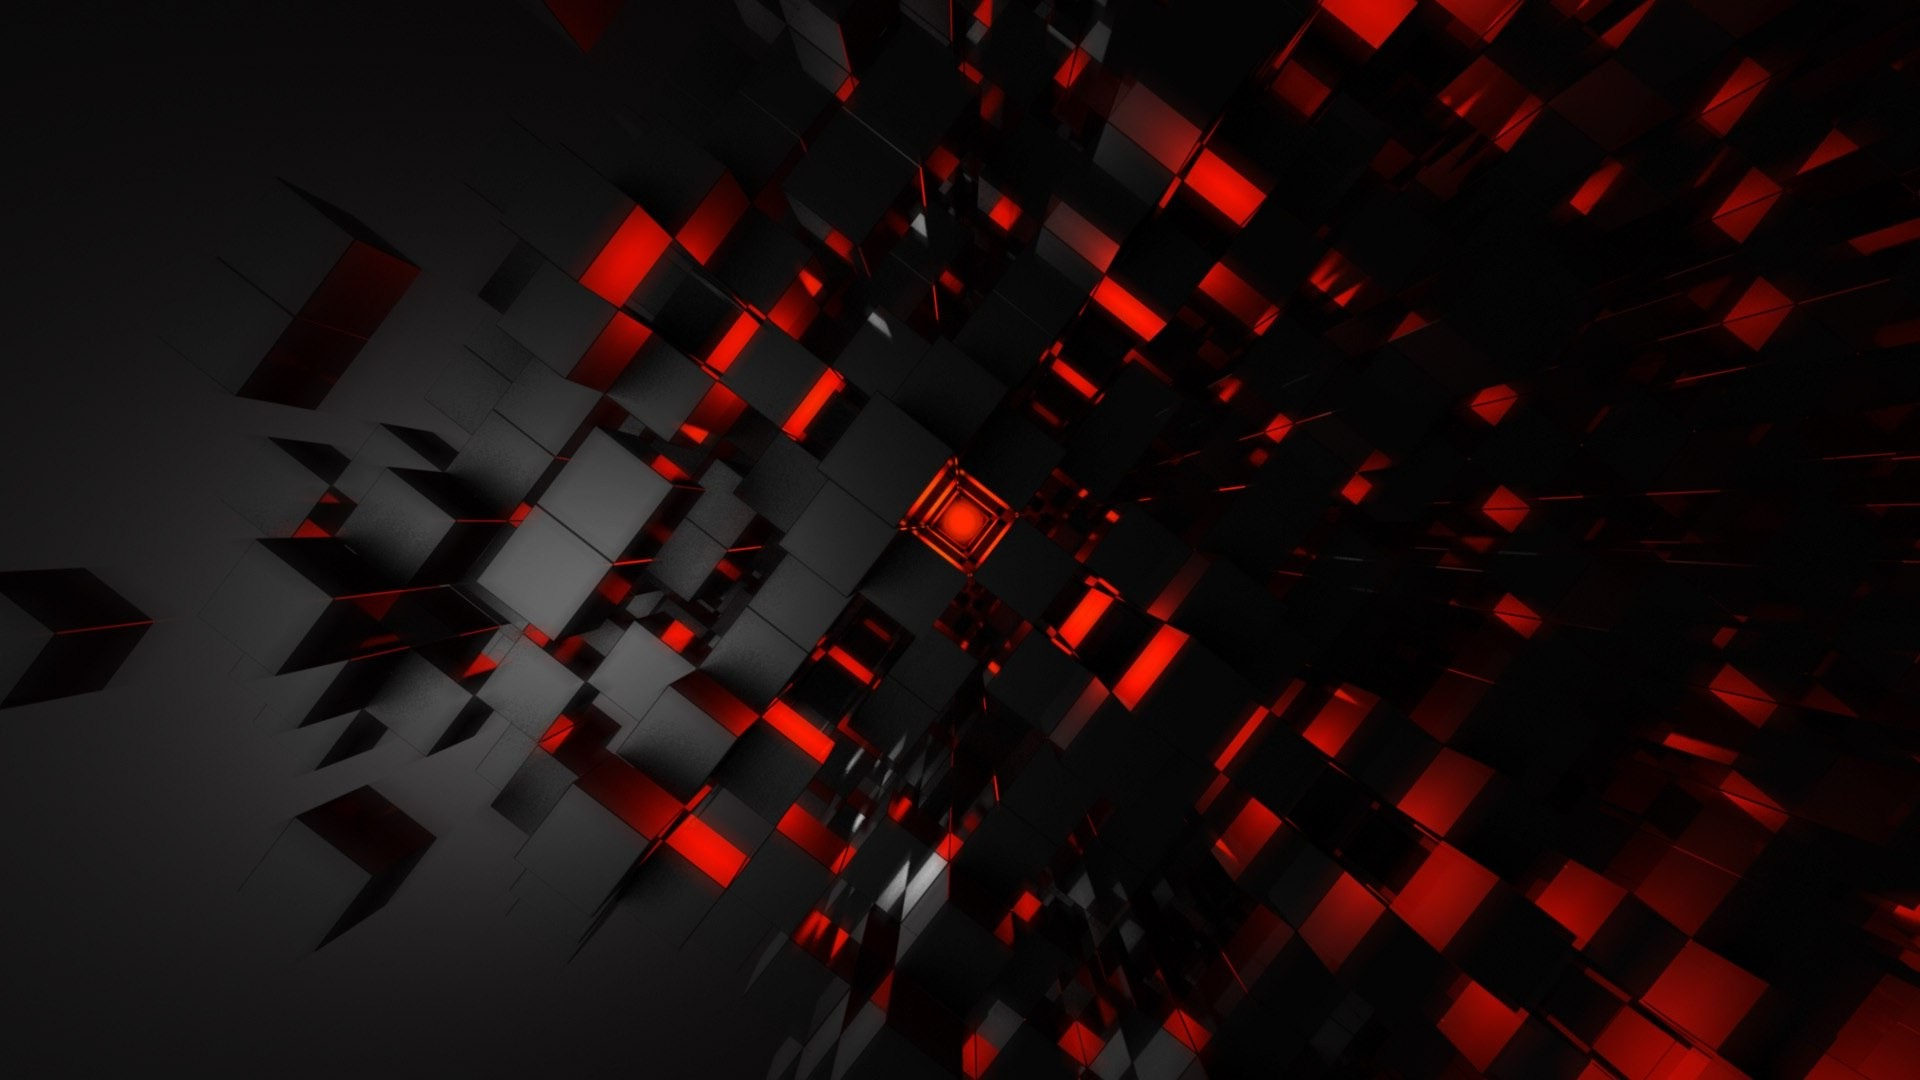 abstract Black And Red Wallpapers HD  Desktop and Mobile